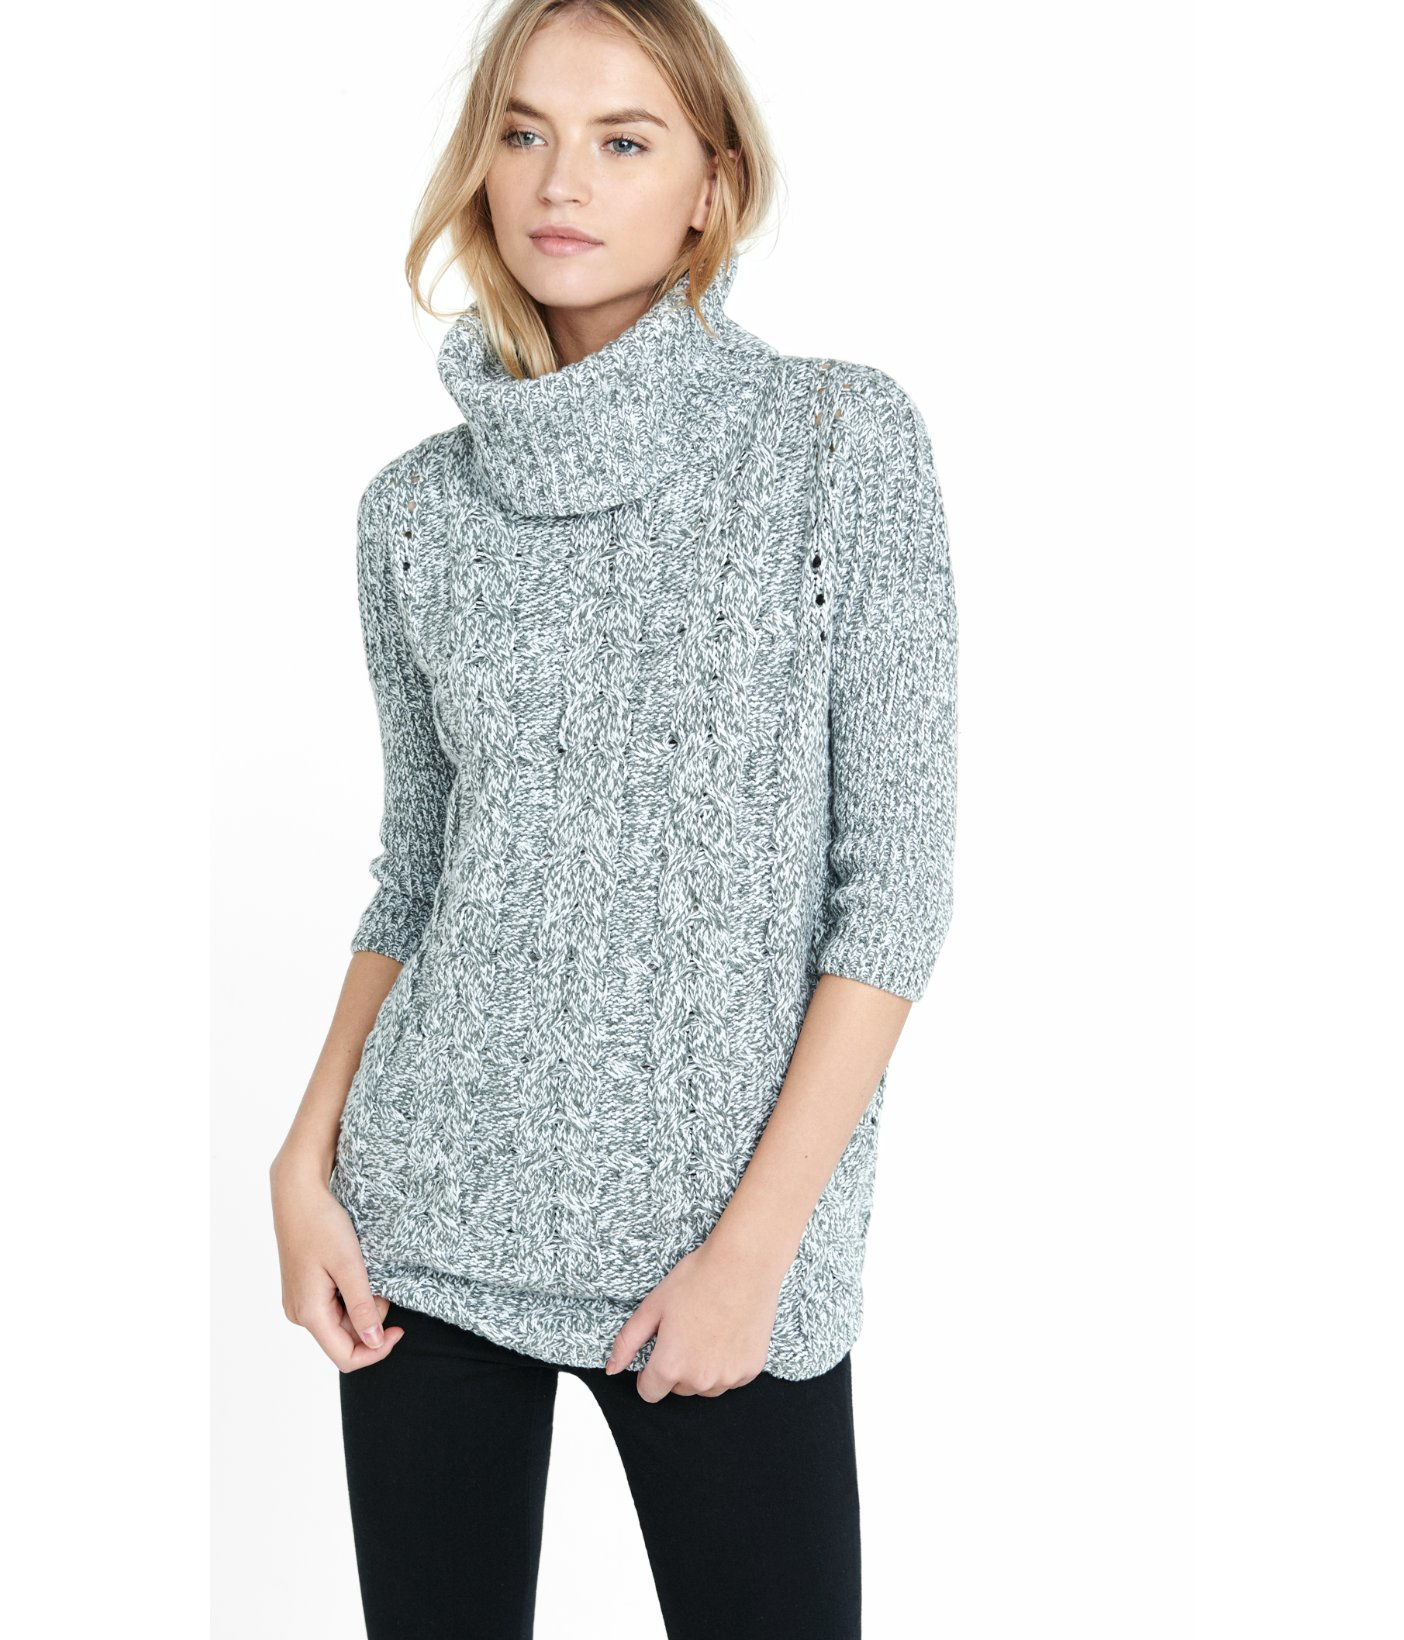 Express Marled Cable Turtleneck Tunic Sweater in Gray | Lyst